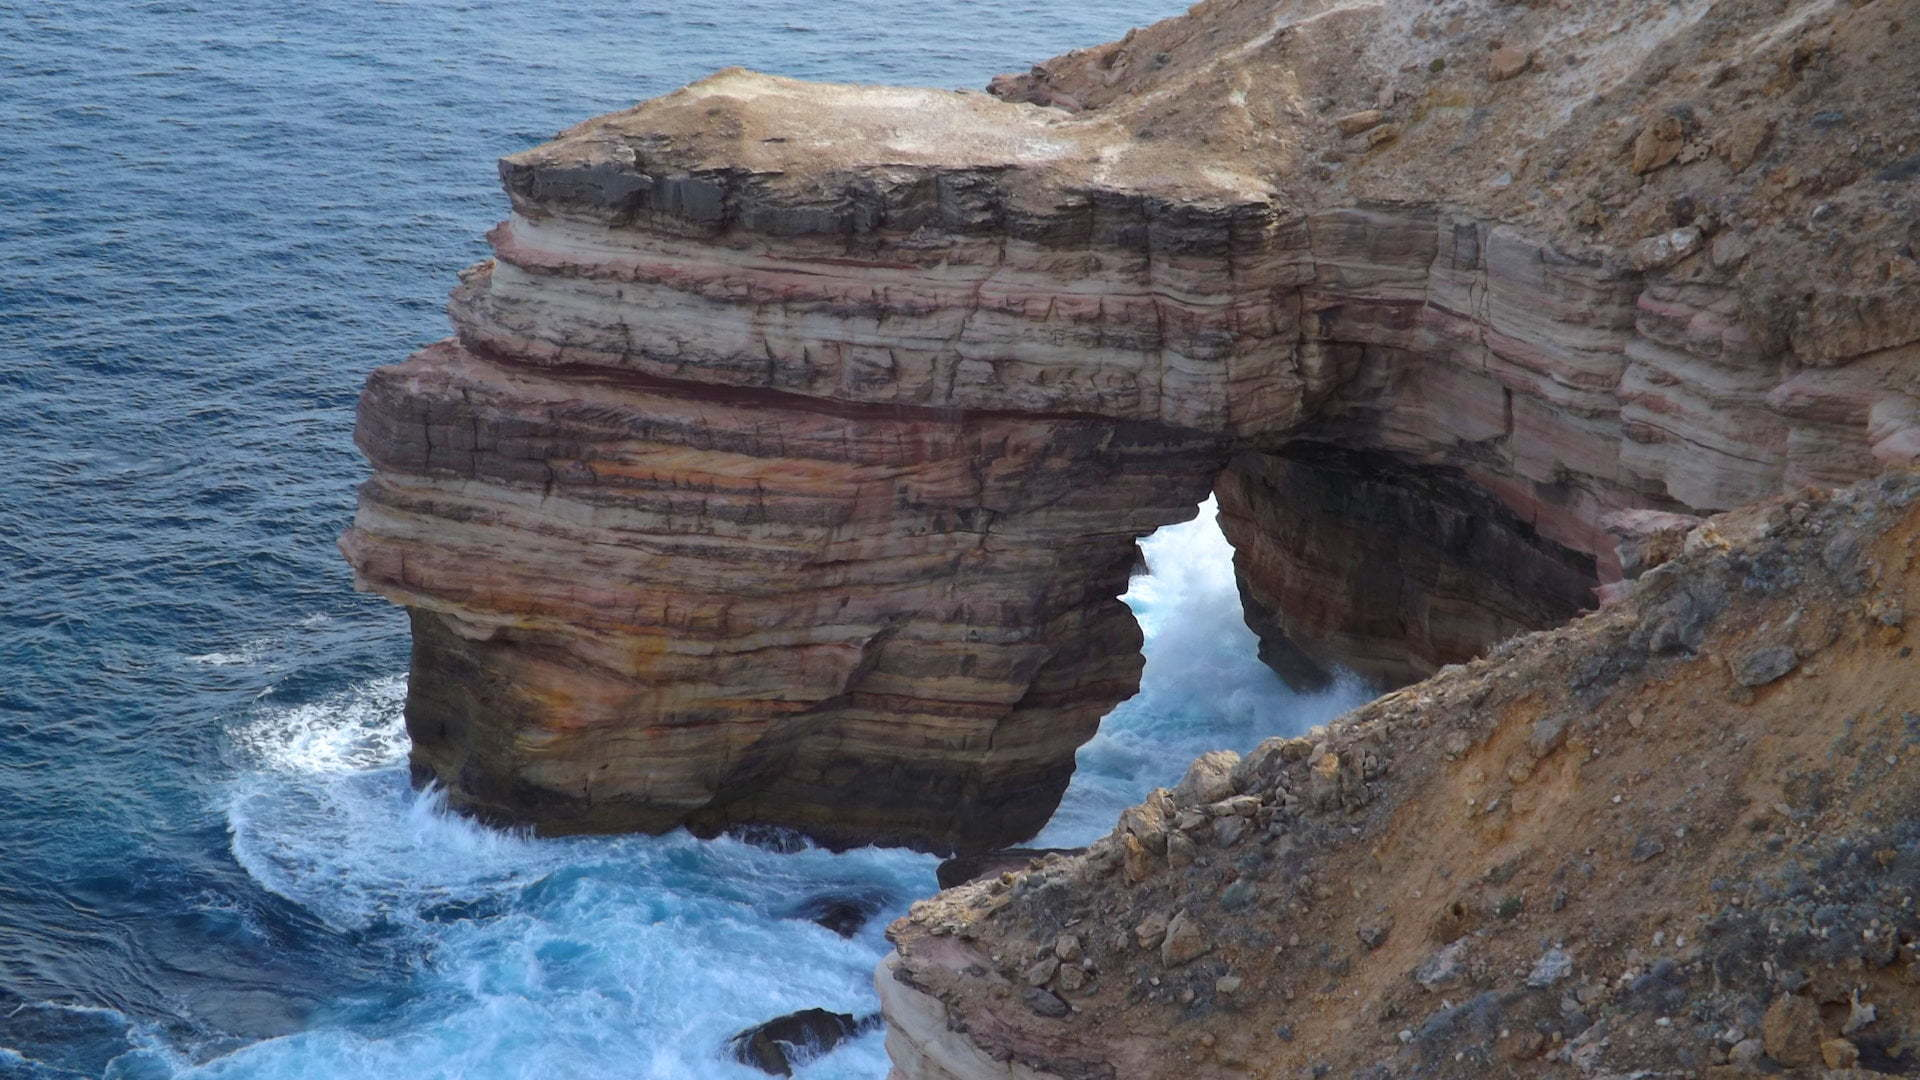 Natural Bridge rock formation in Kalbarri National Park on the Western Australian coast